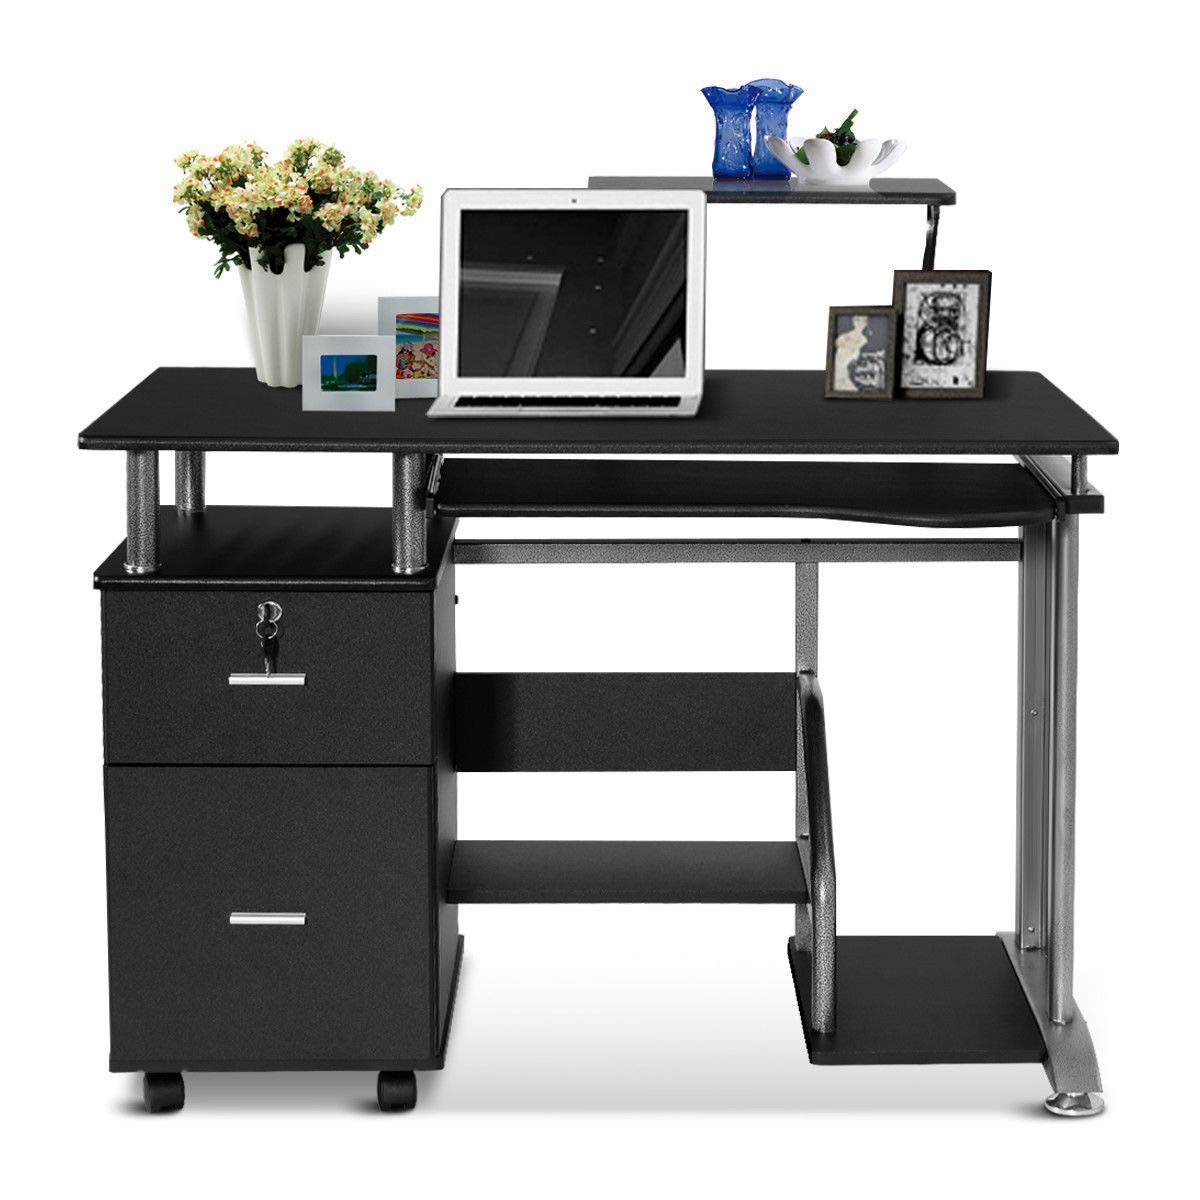 Tangkula Computer Desk, Home Office Desk, Computer Workstation, Study Writing Desk with Storage Drawer and Pull-Out Keyboard Tray, Compact Laptop PC Workstation